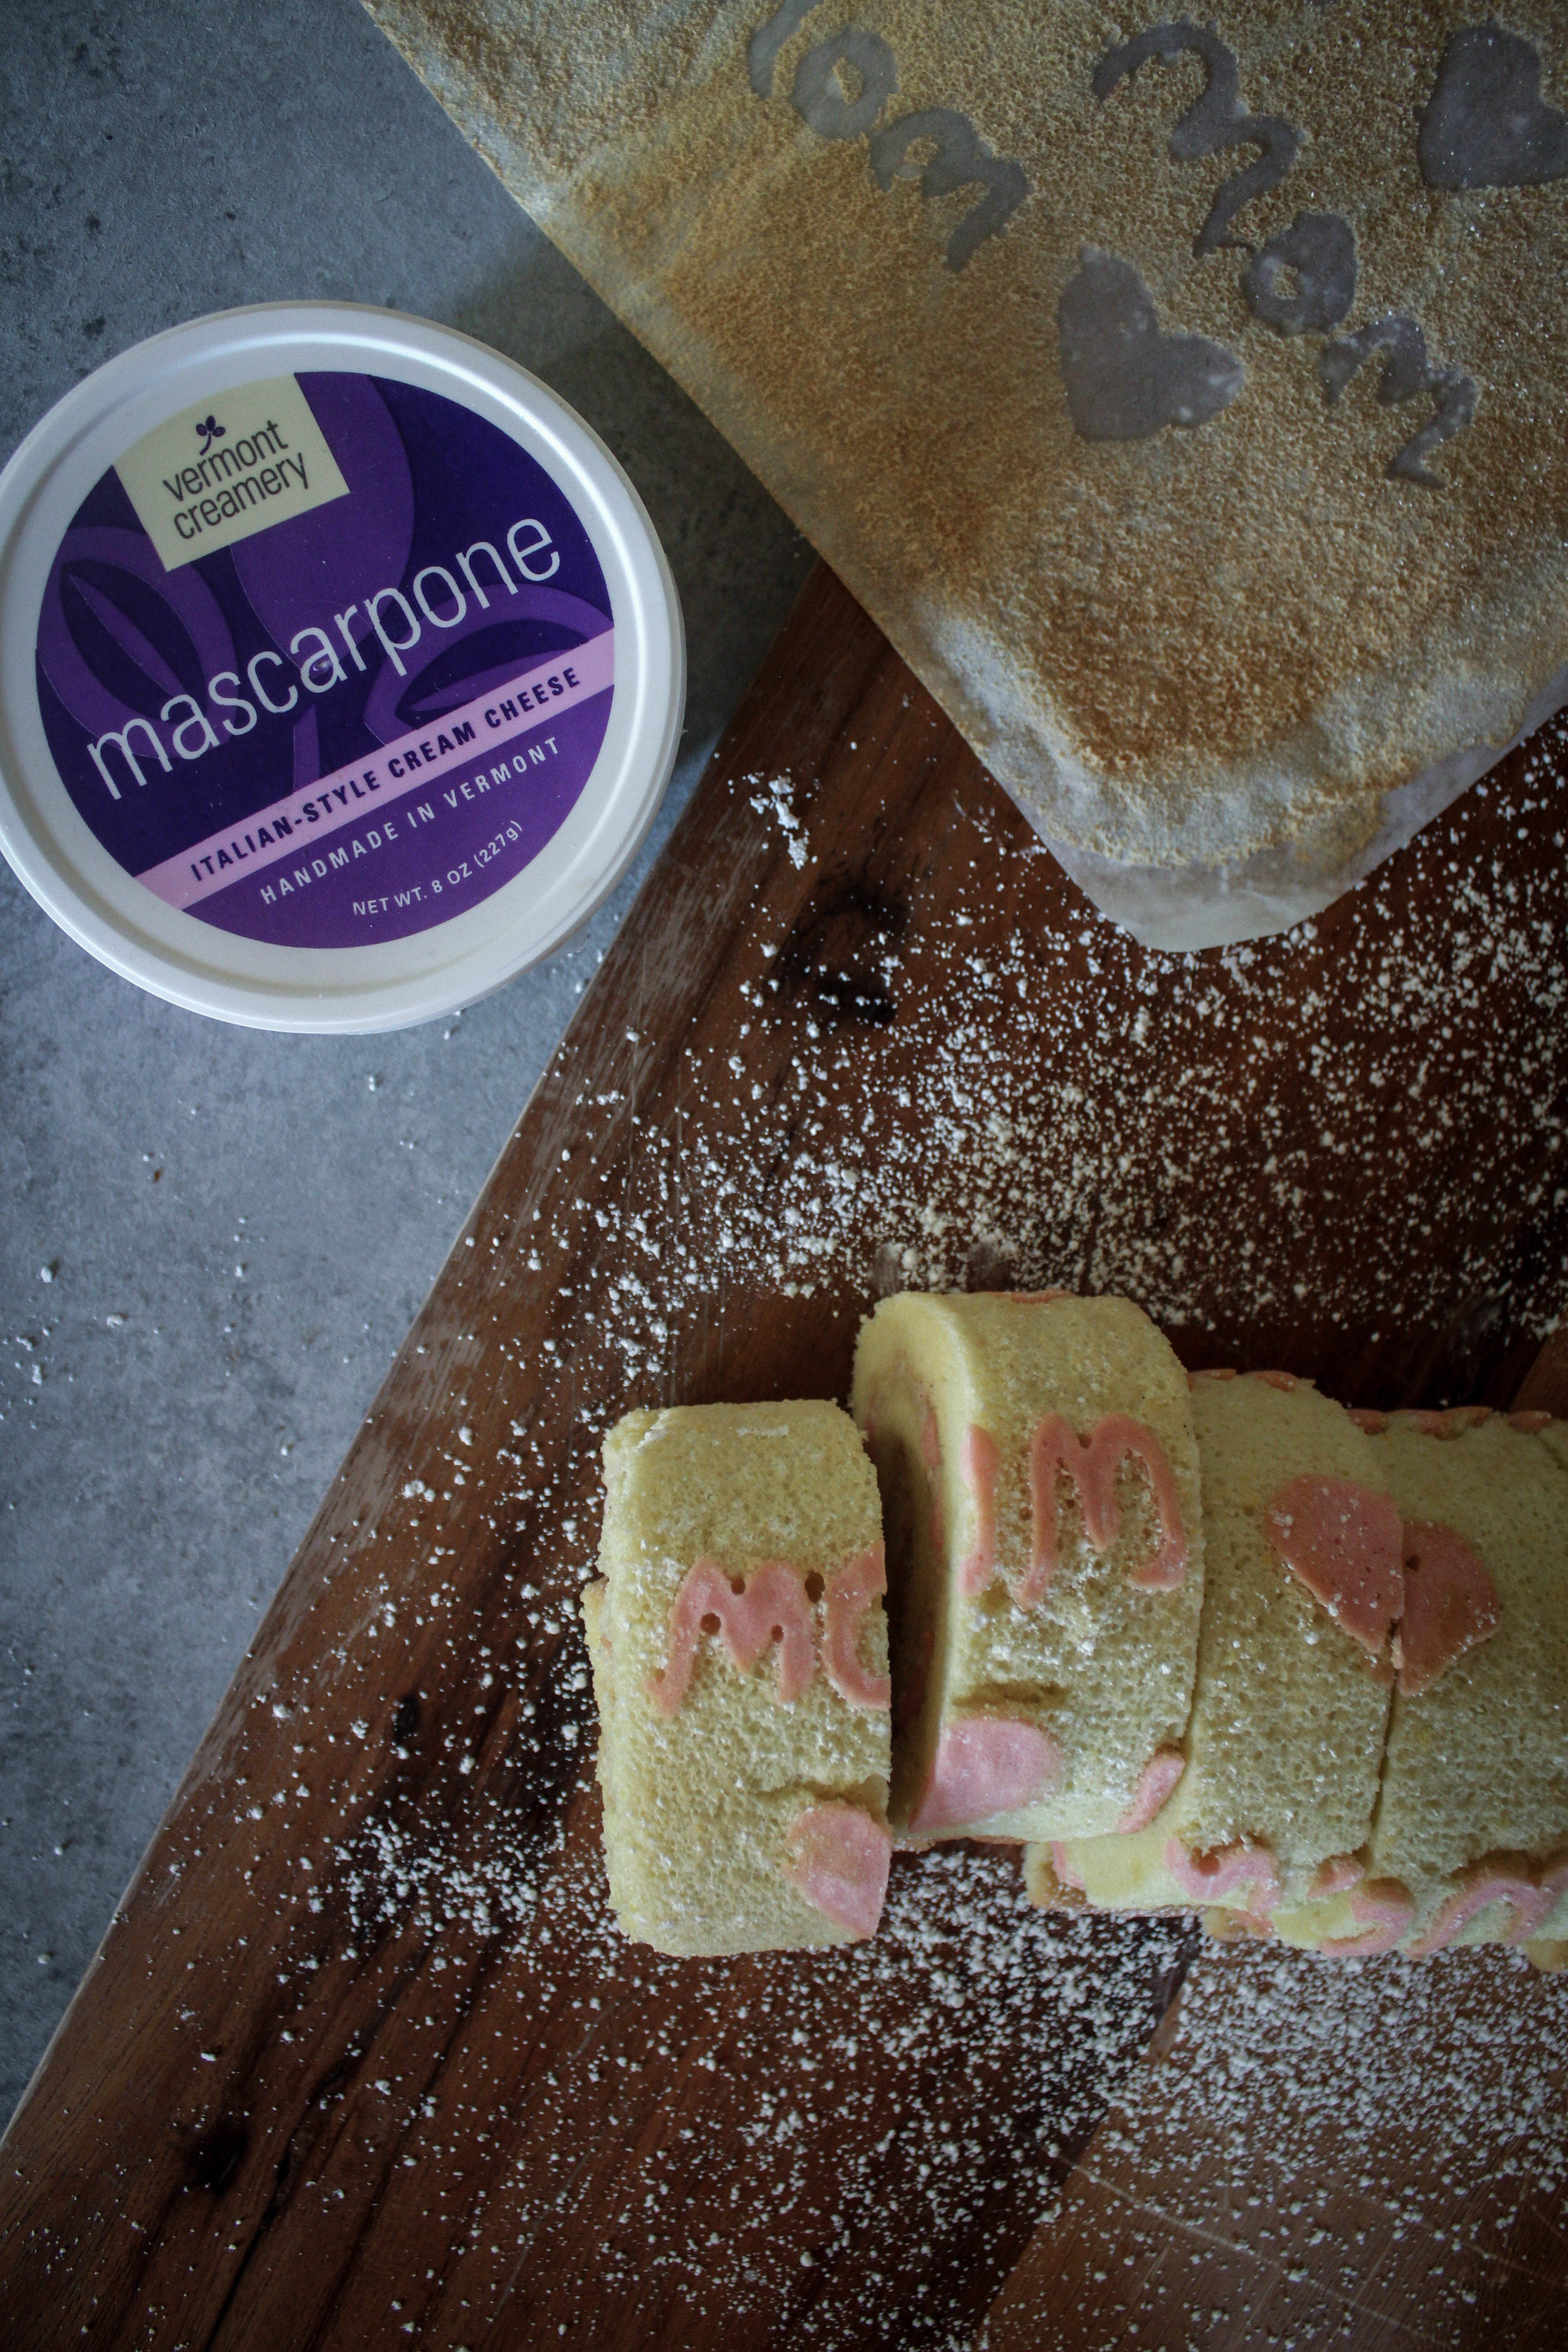 Mother's Day Swiss Roll with Mascarpone